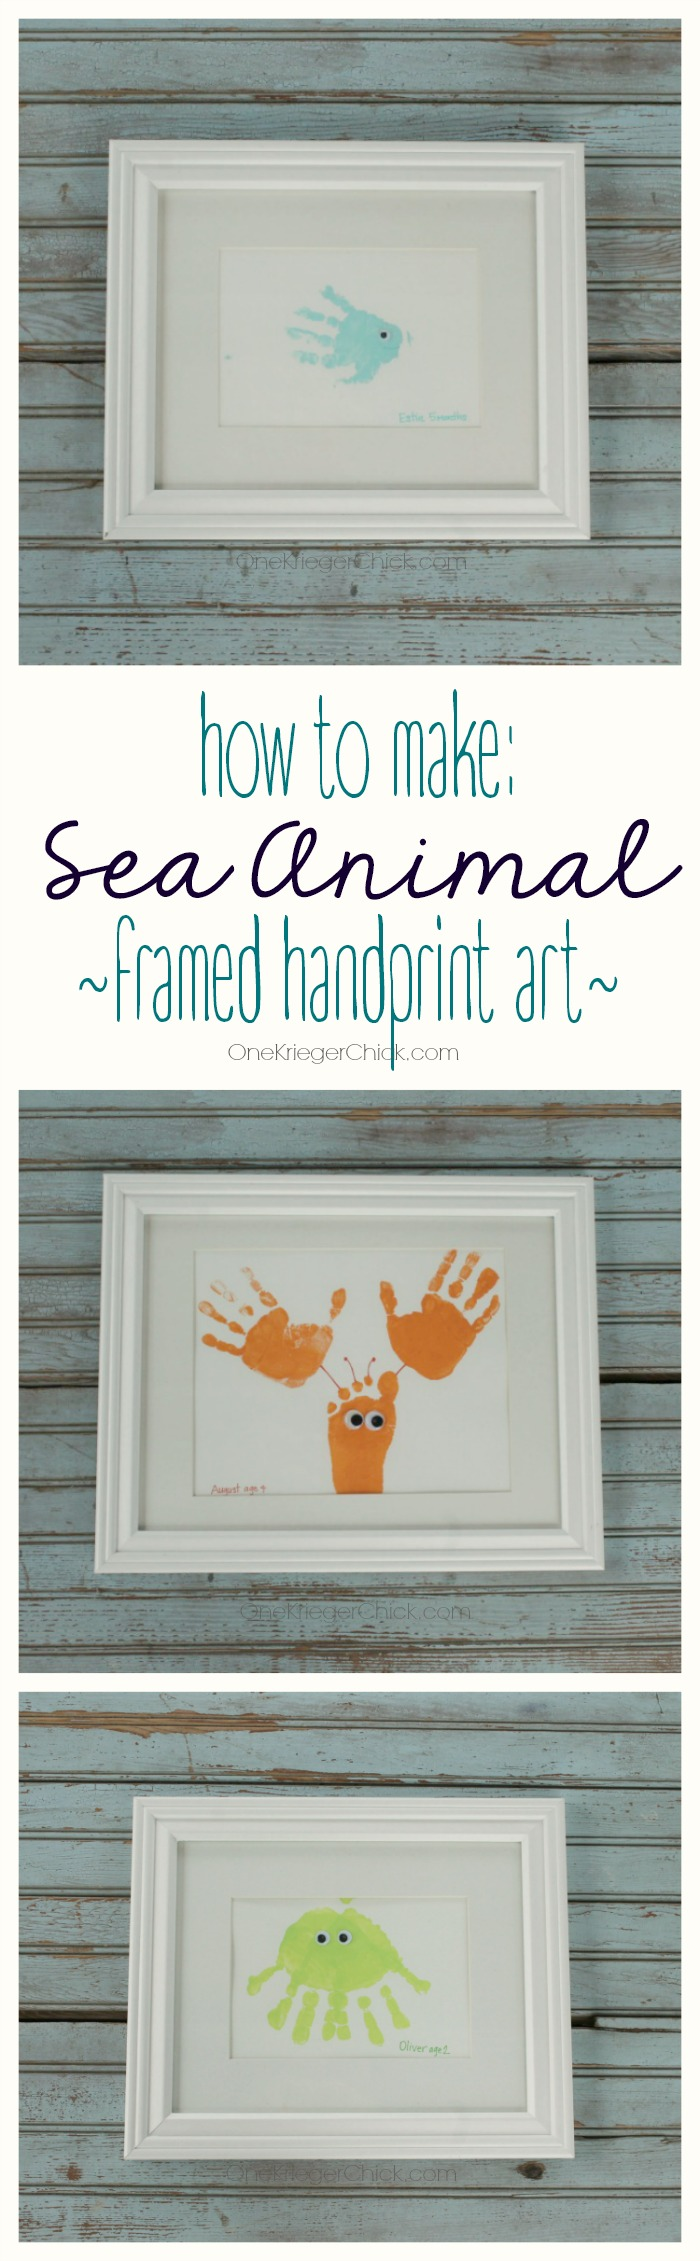 How to Make Sea Animal Framed Handprint Art by One Krieger Chick | Mabey She Made It | #handprint #decor #seaanimal